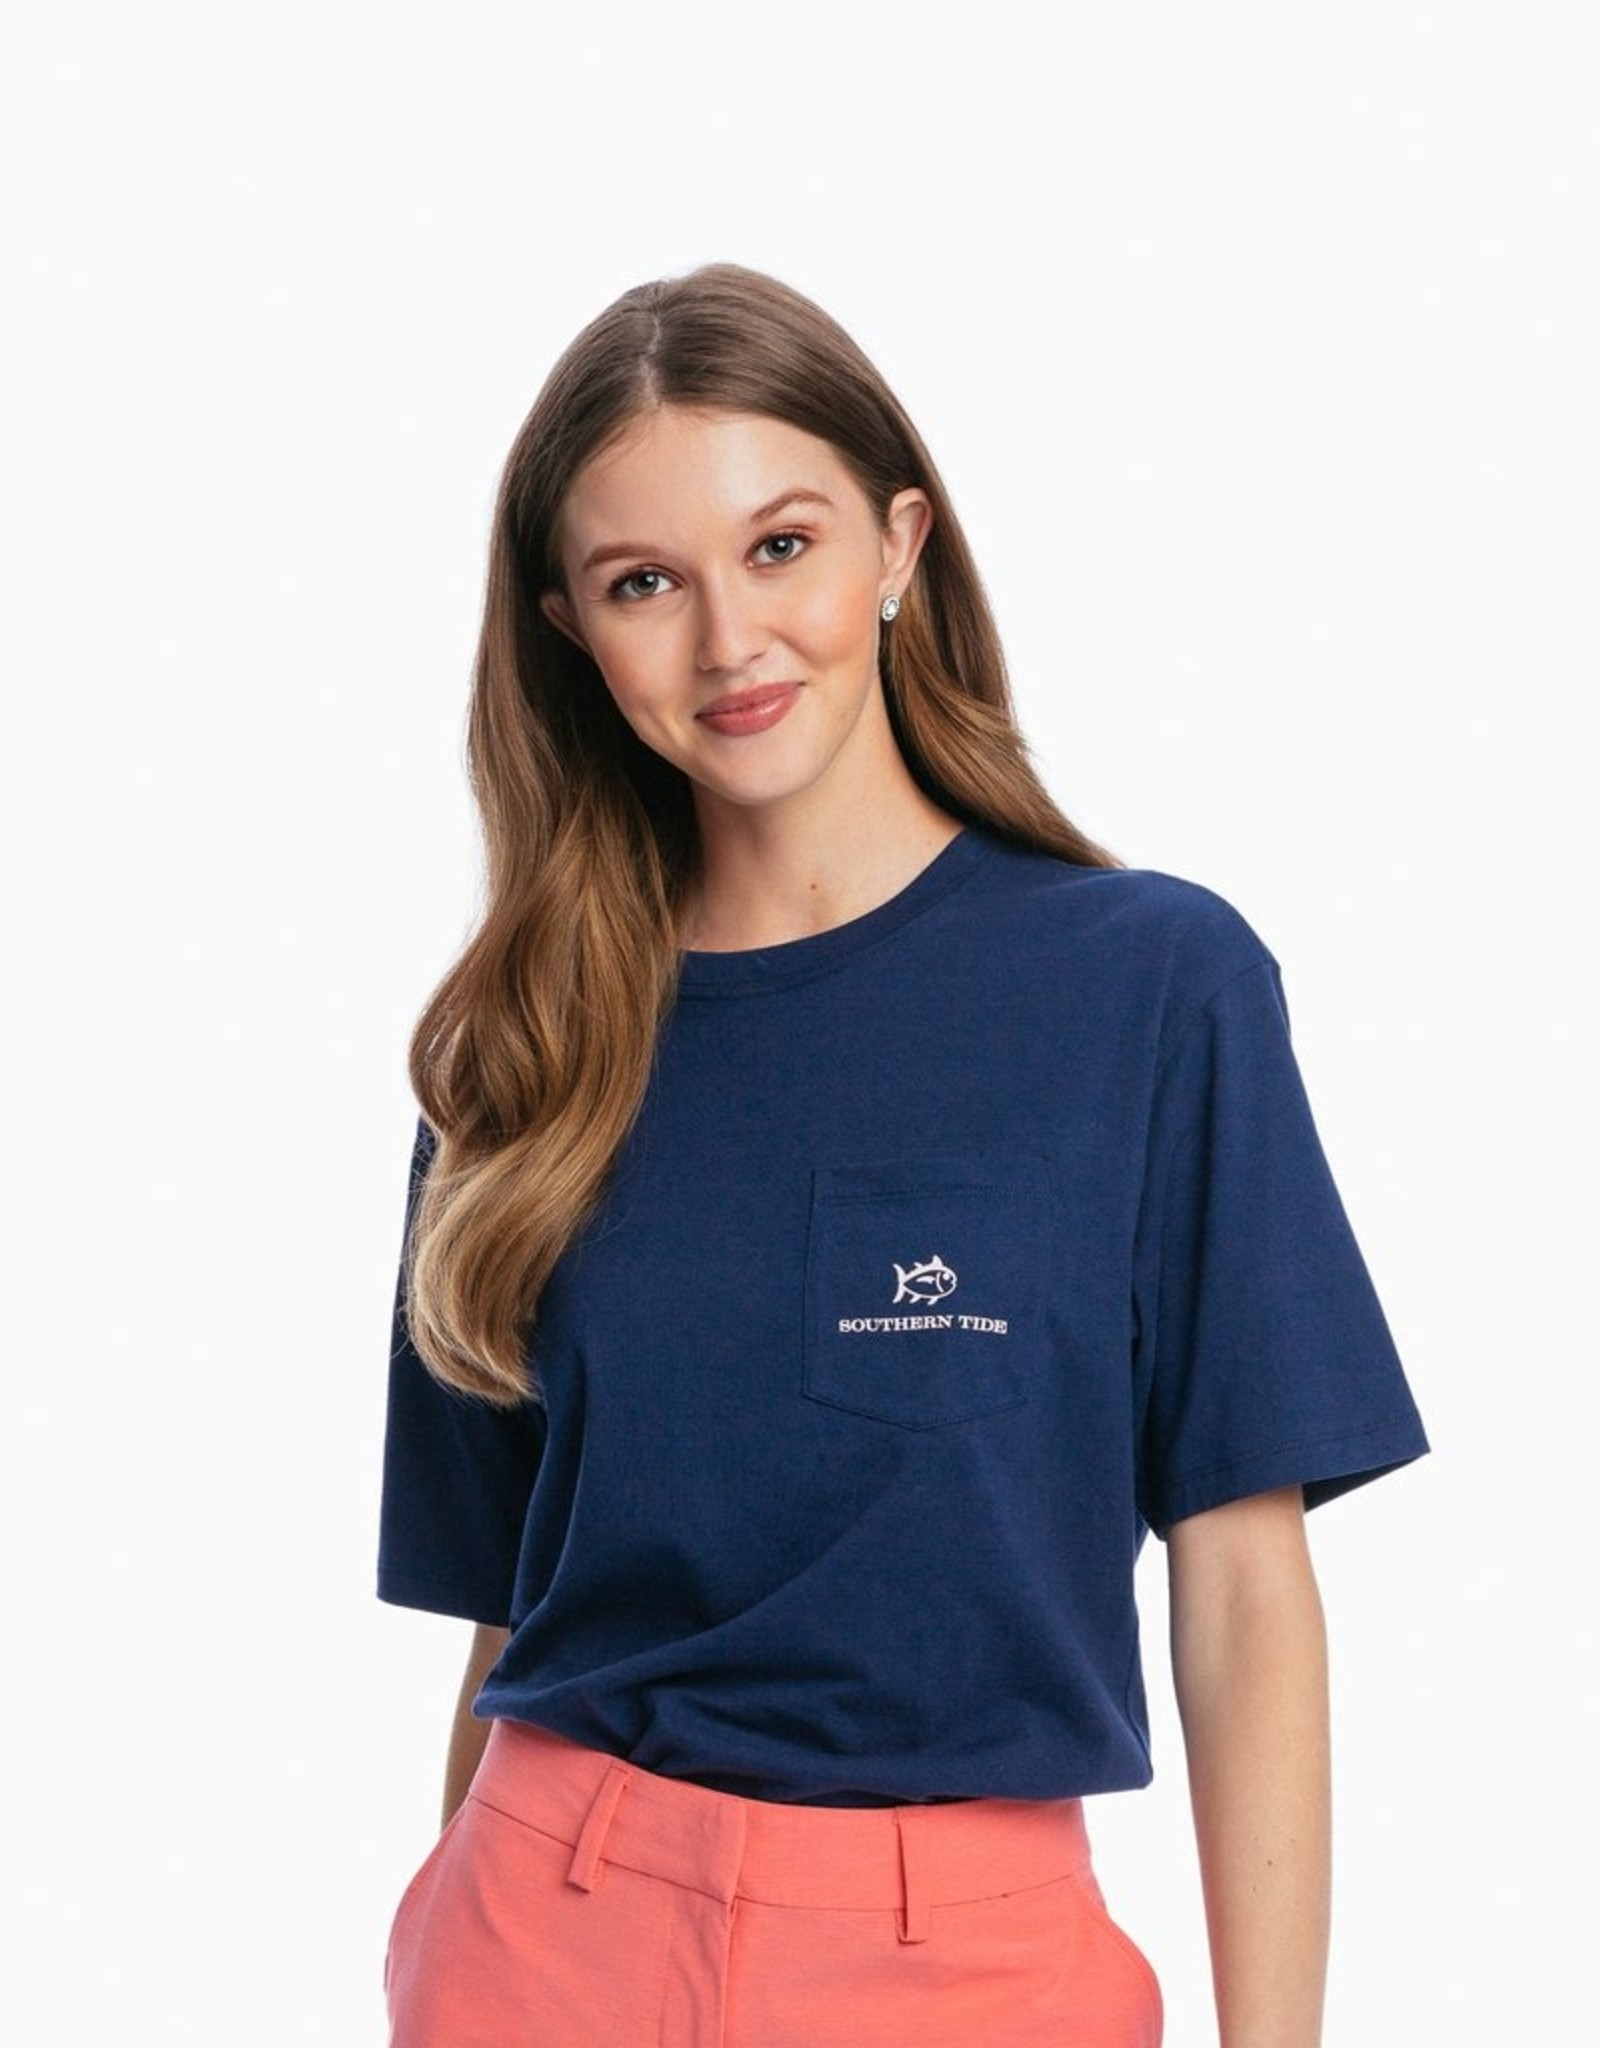 Southern Tide Go With The Flow Turtle Tee